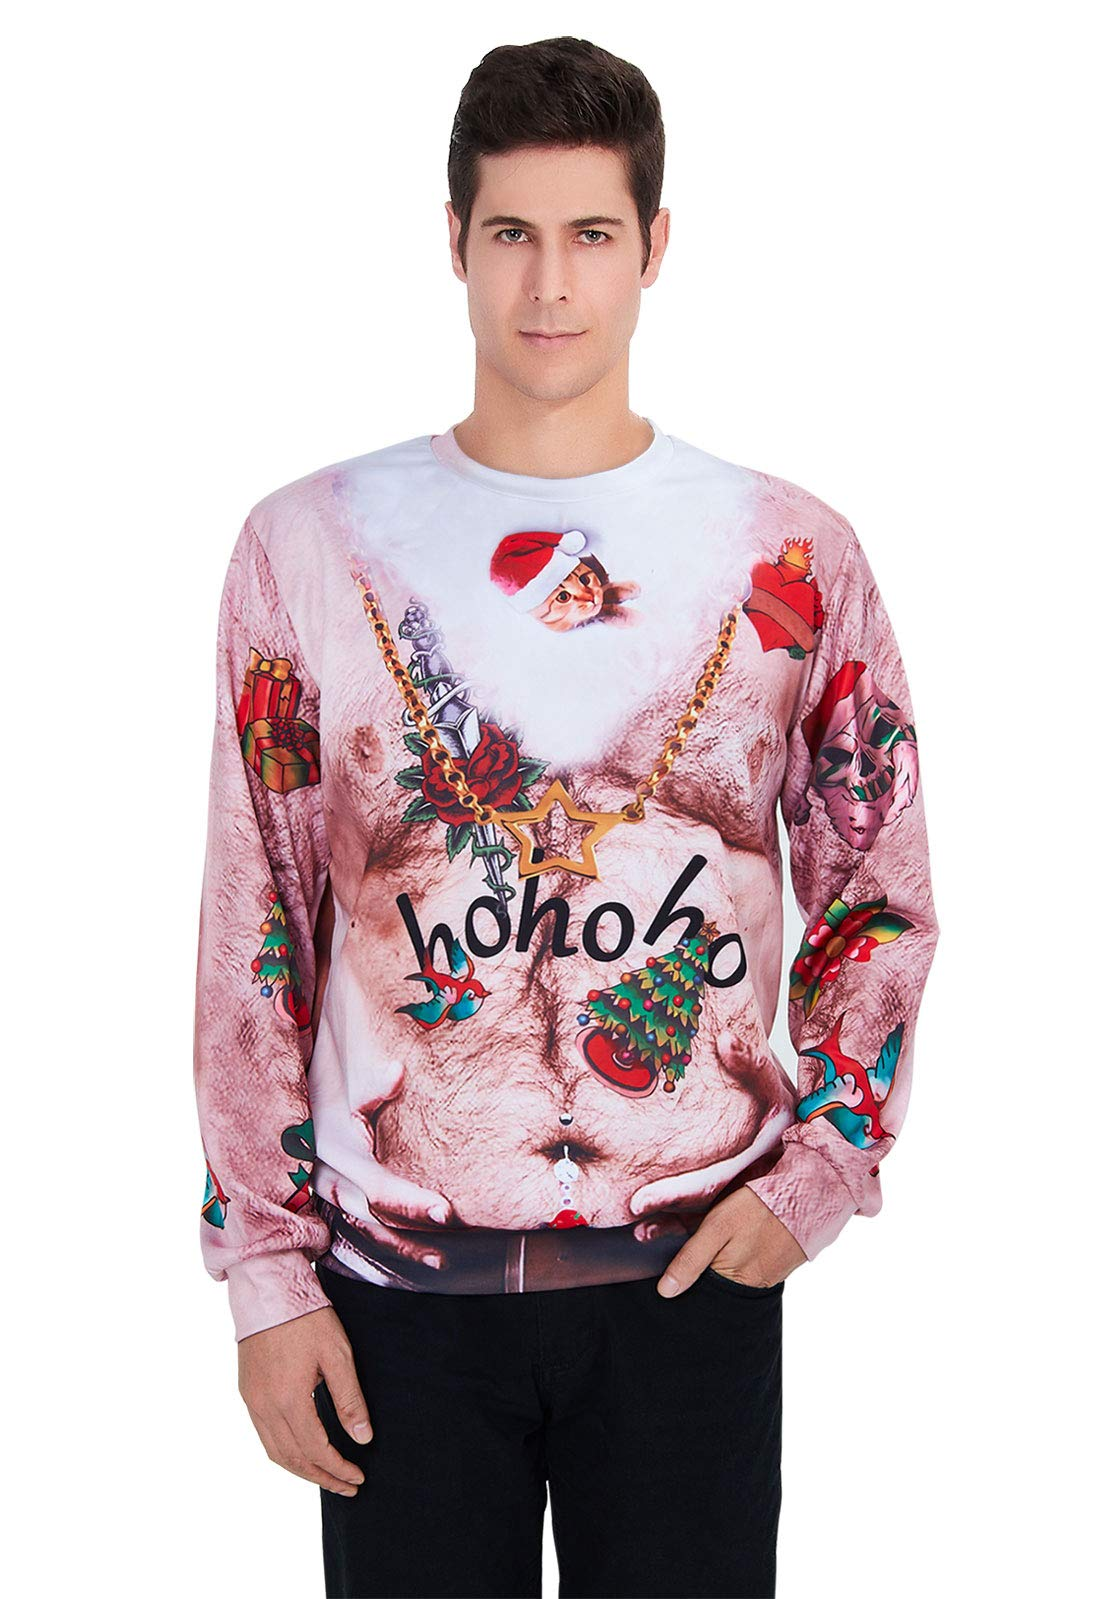 TUONROAD Ugly Christmas Sweater Ugliest Santa Mask Green Red Bird Flowers Awl Gold Star Necklace Adults Graphic Printed Tacky Sweatshirt Crew Neck Long Sleeve Crazy Pullover Jumper Top